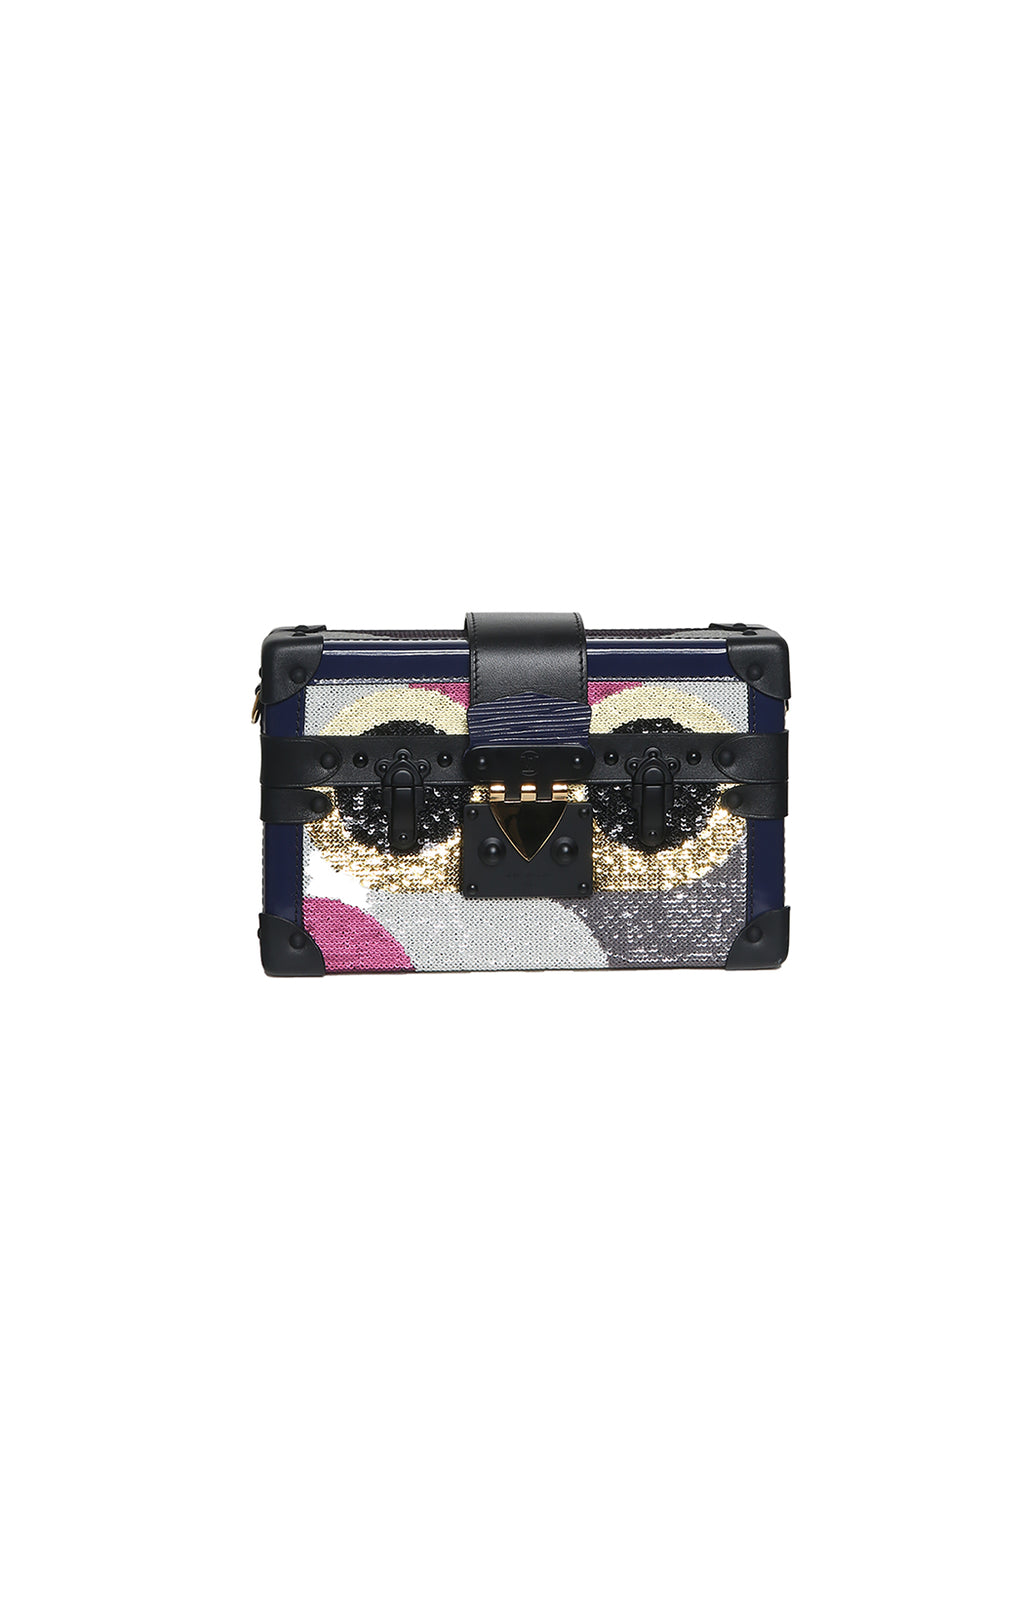 Front view of LOUIS VUITTON Beaded Clutch Size: 7.5 x 5 x 2 in.